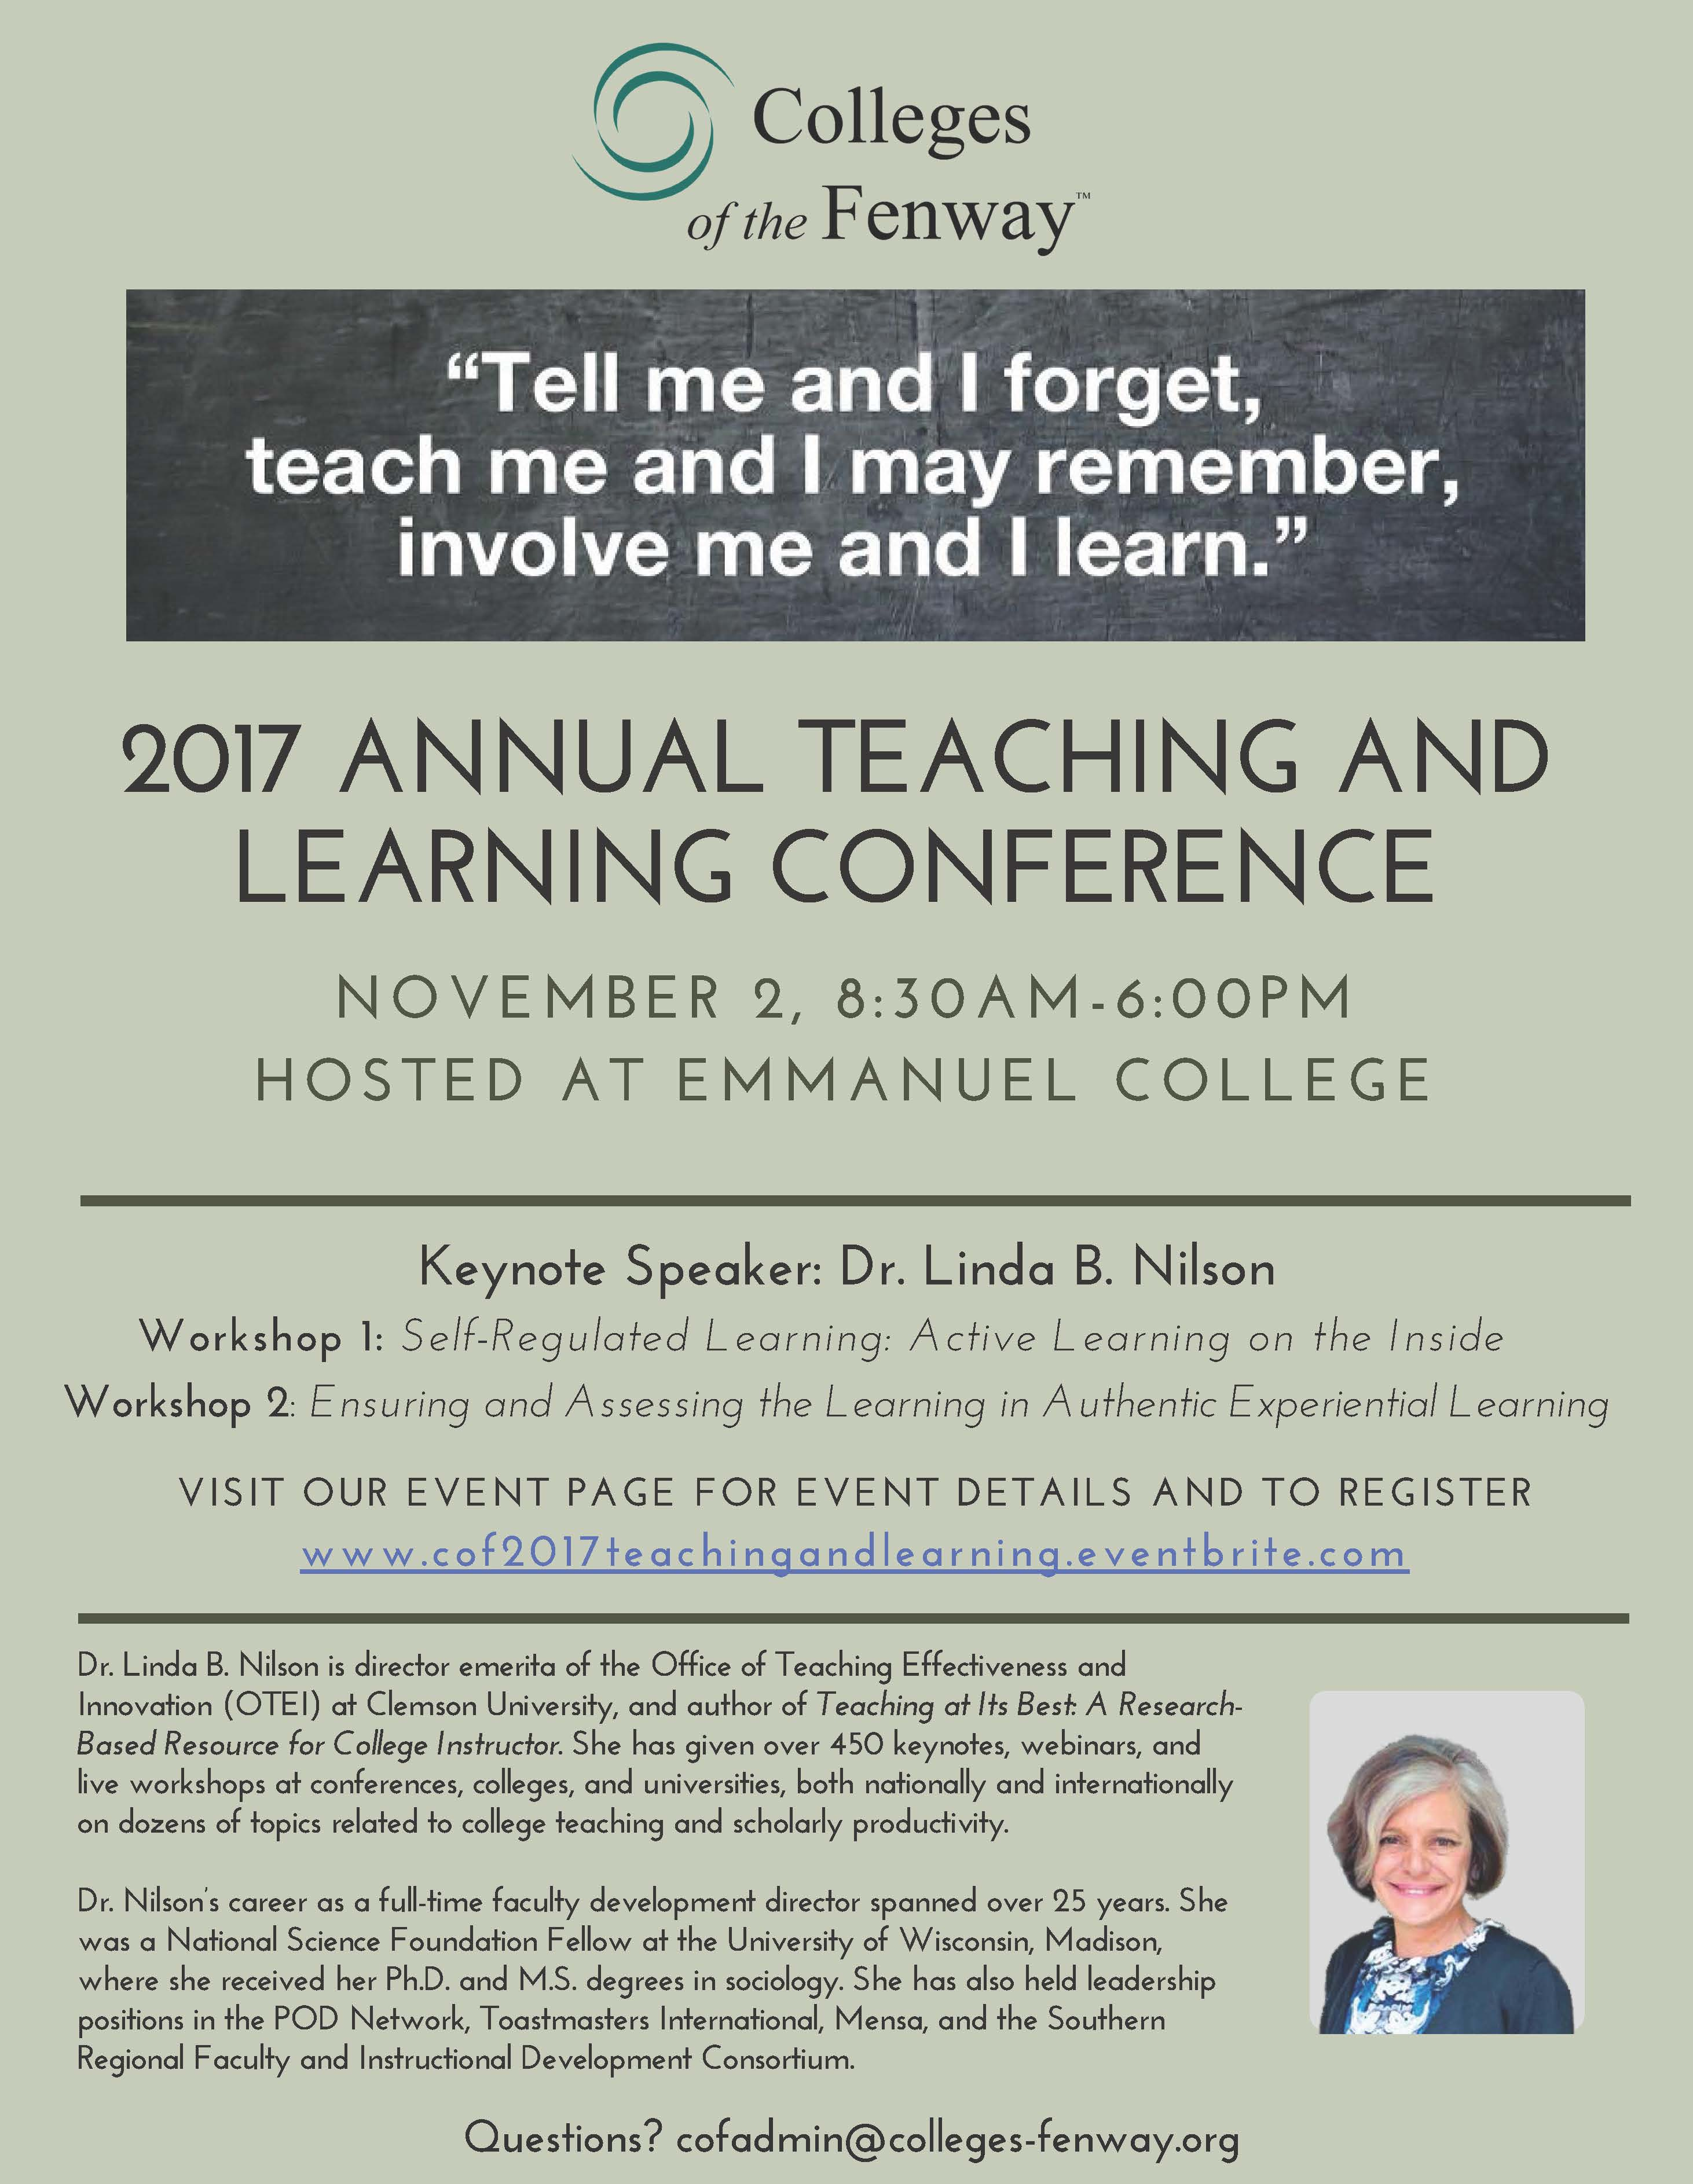 COF Teaching and Learning Conference November 2, 2017 (Free to MCPHS faculty & staff)